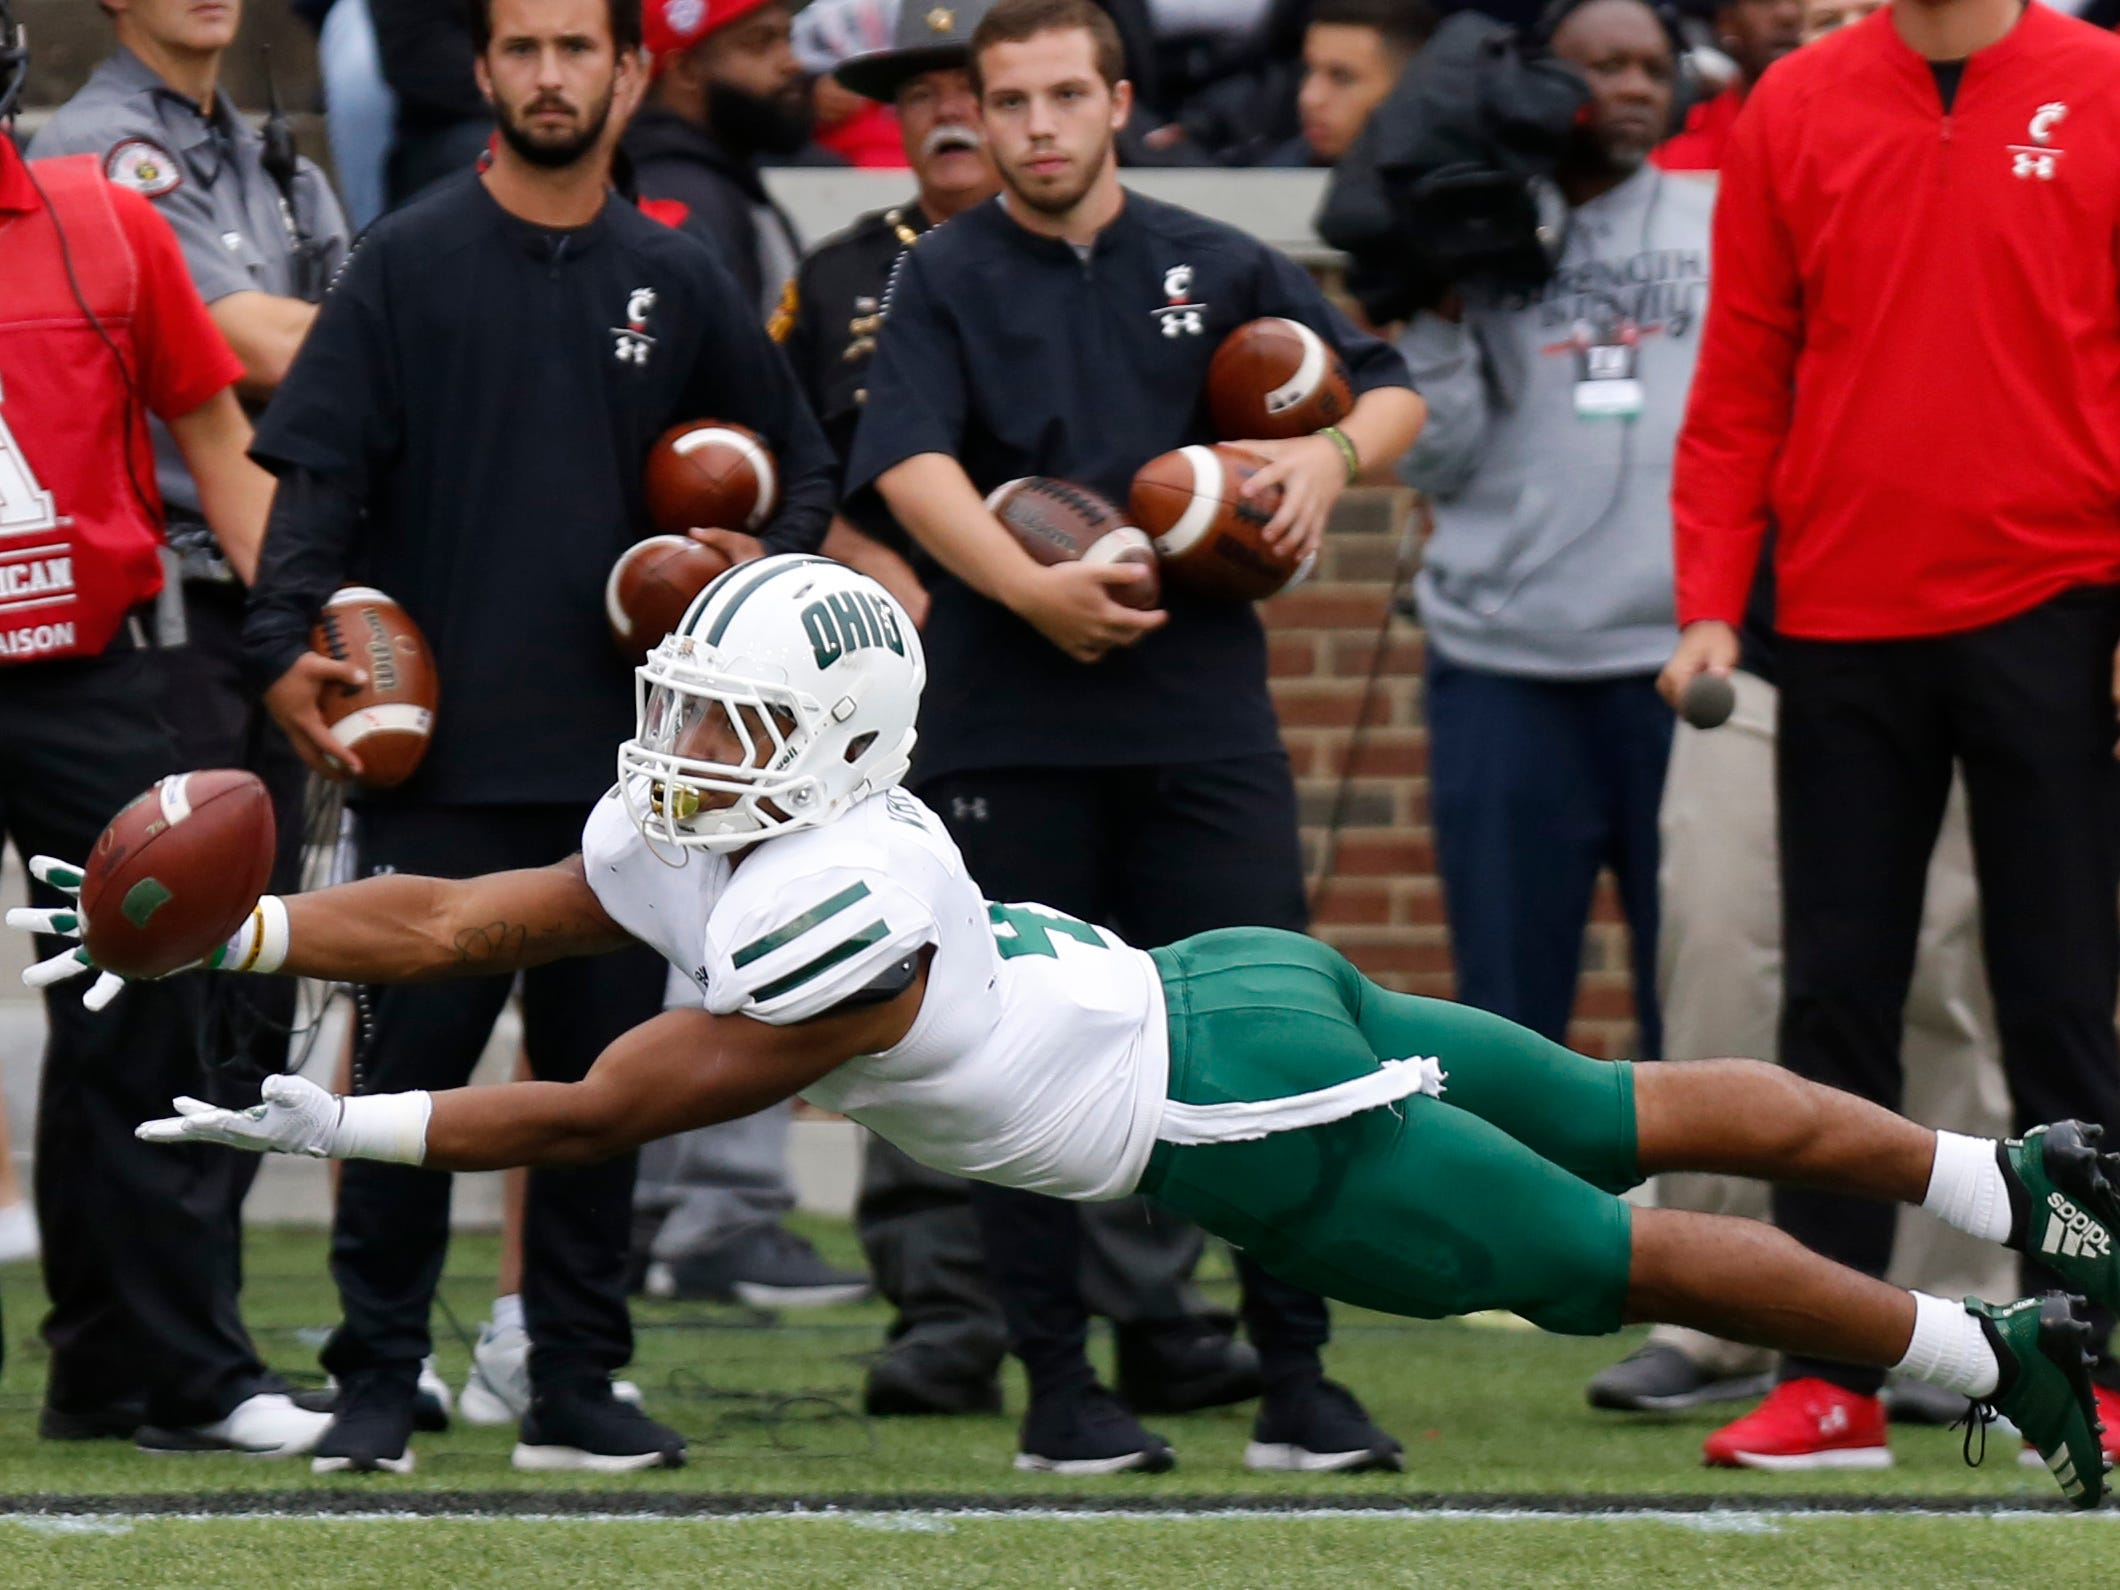 Ohio Bobcats wide receiver Papi White dives for the ball against the Cincinnati Bearcats during the first half at Nippert Stadium.